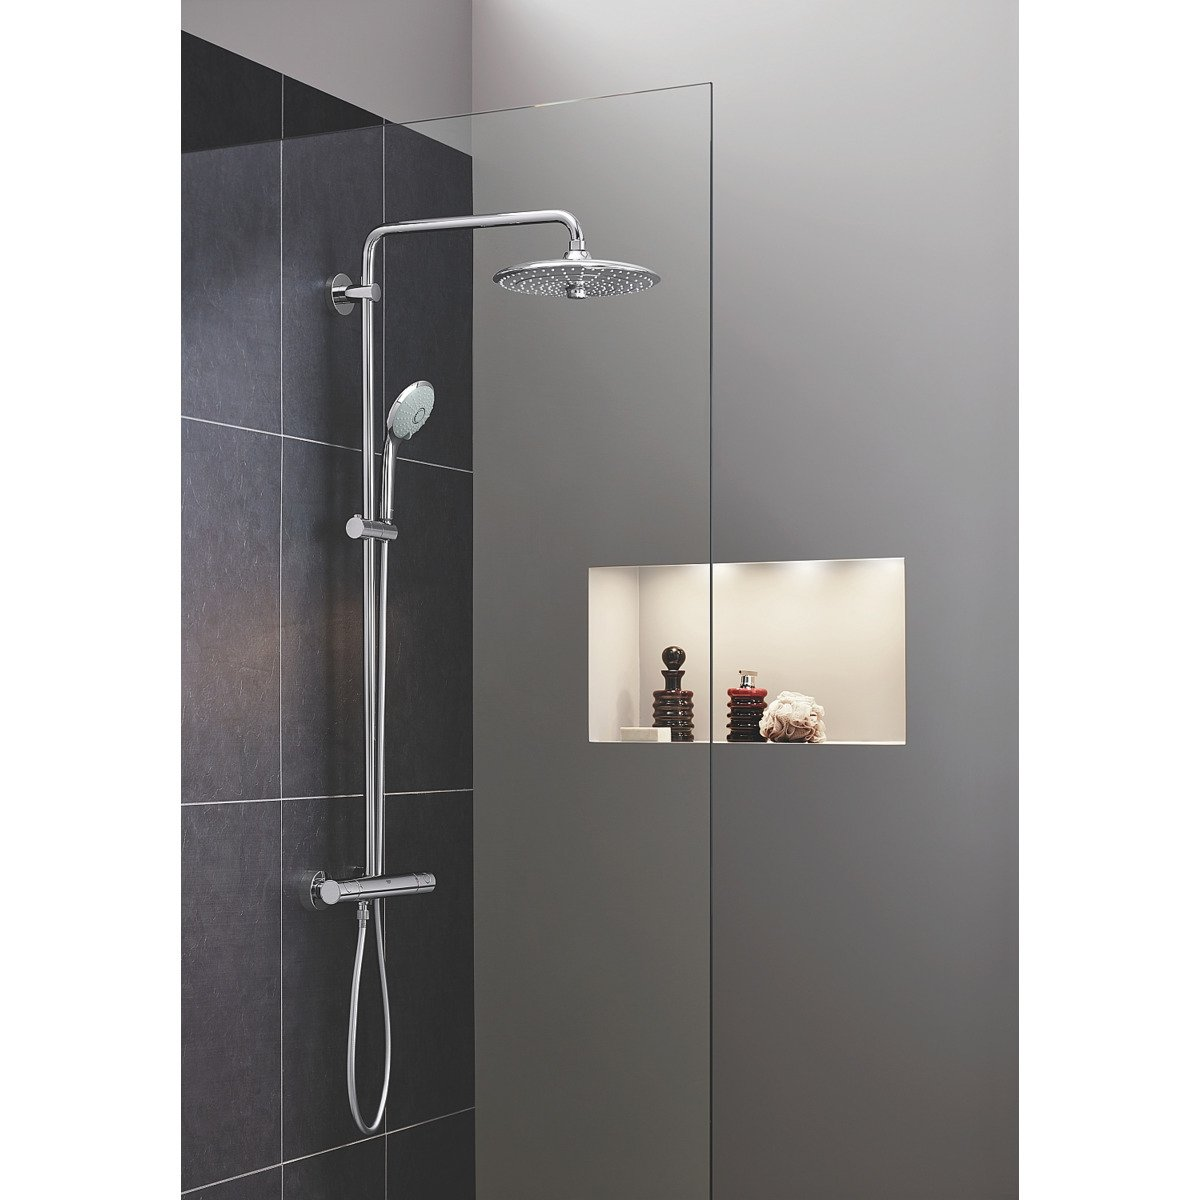 Grohe Euphoria Douchesysteem 180 Chroom Grohe Euphoria Douchesysteem Thermostatisch En Euphoria